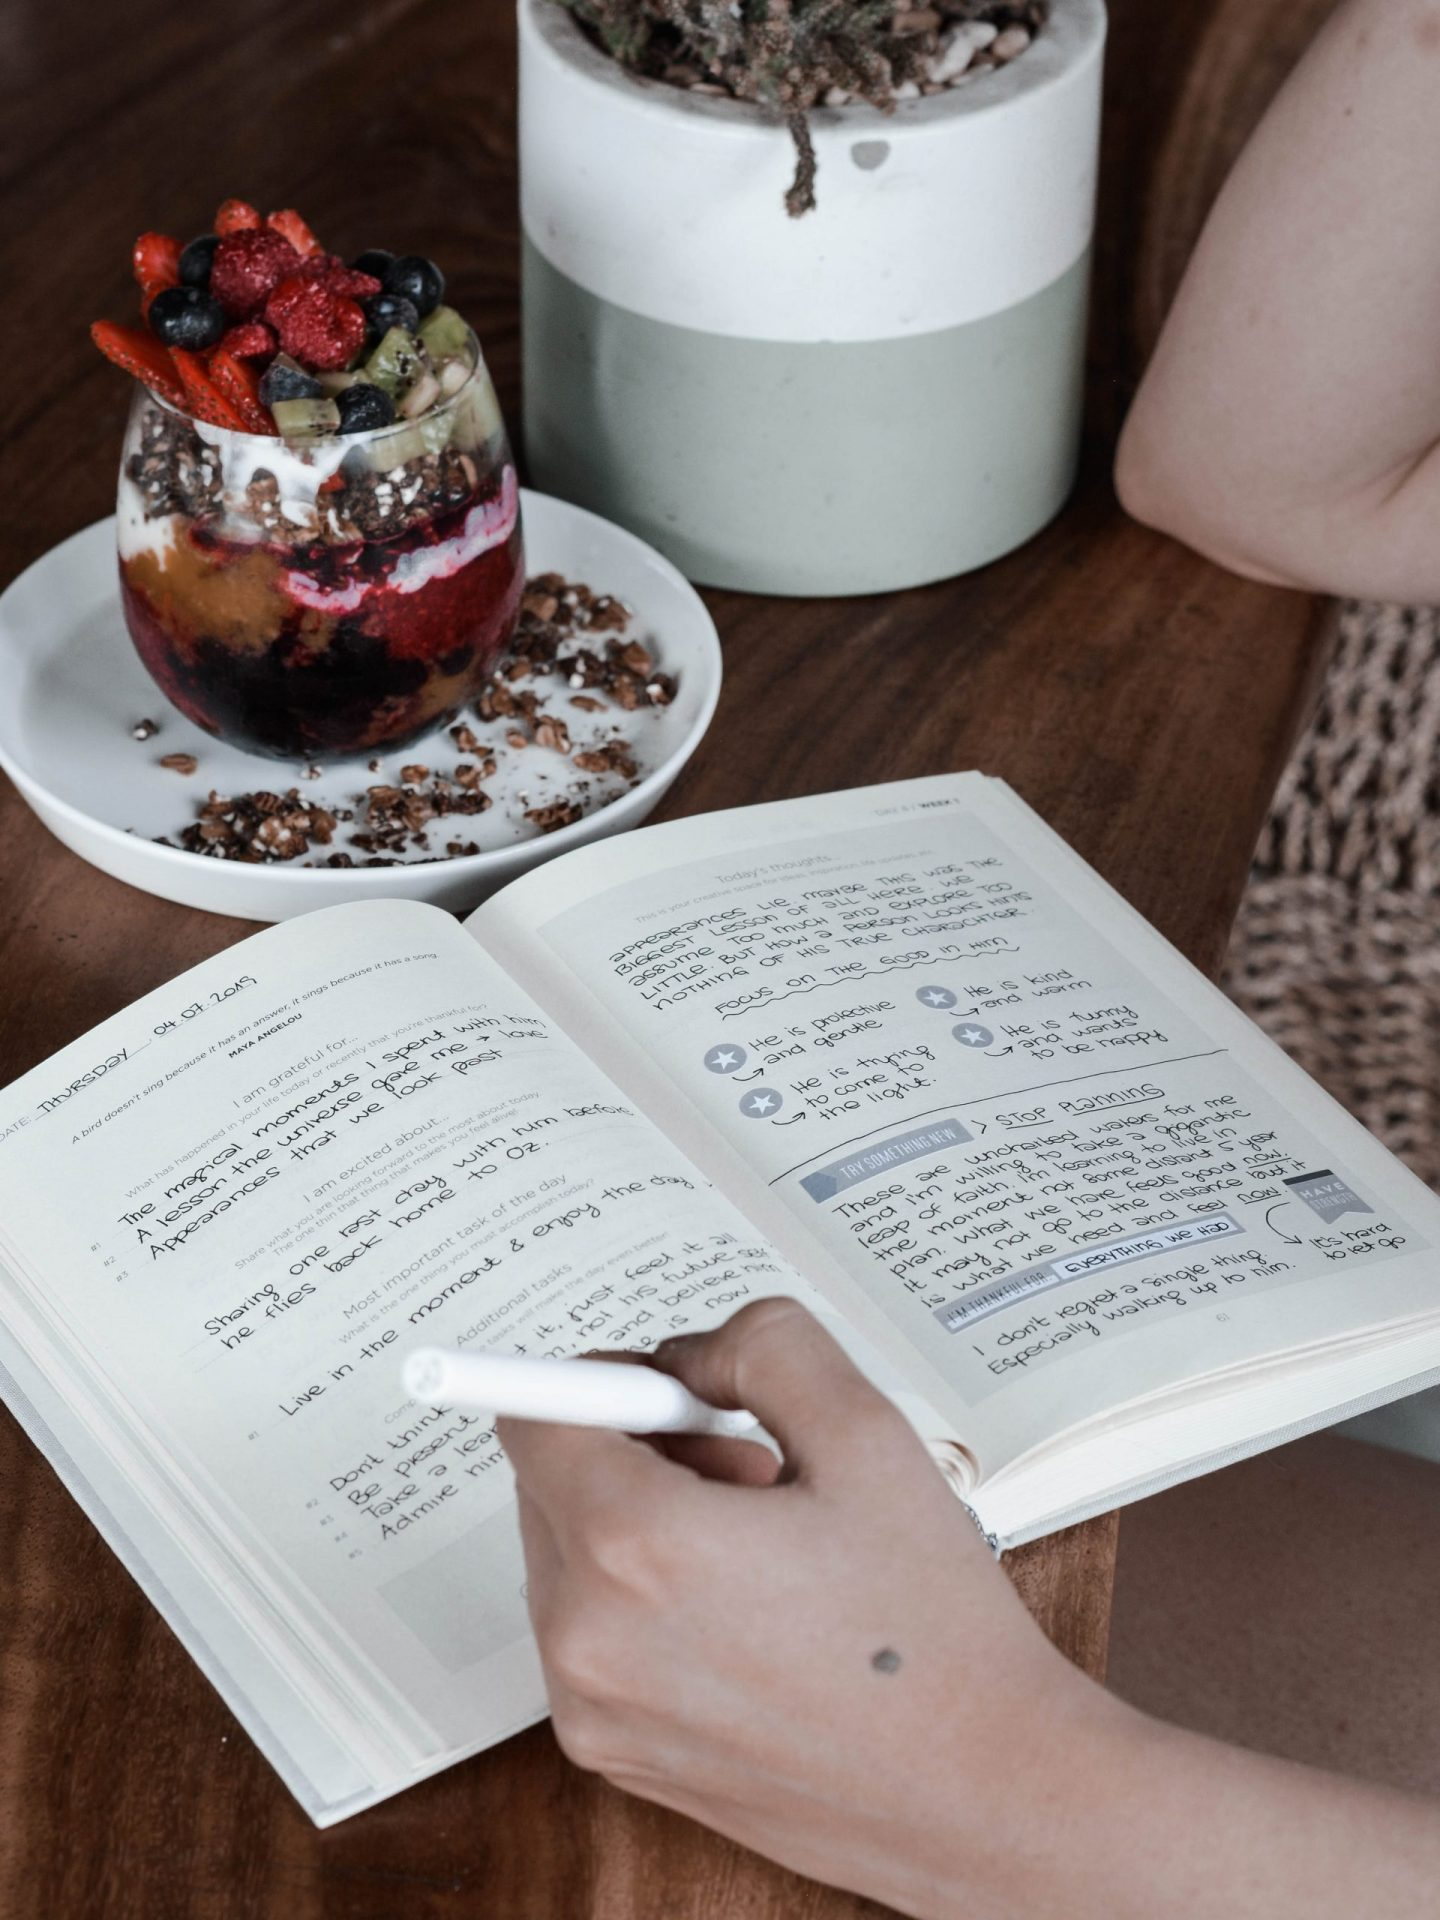 Life journaling prompts